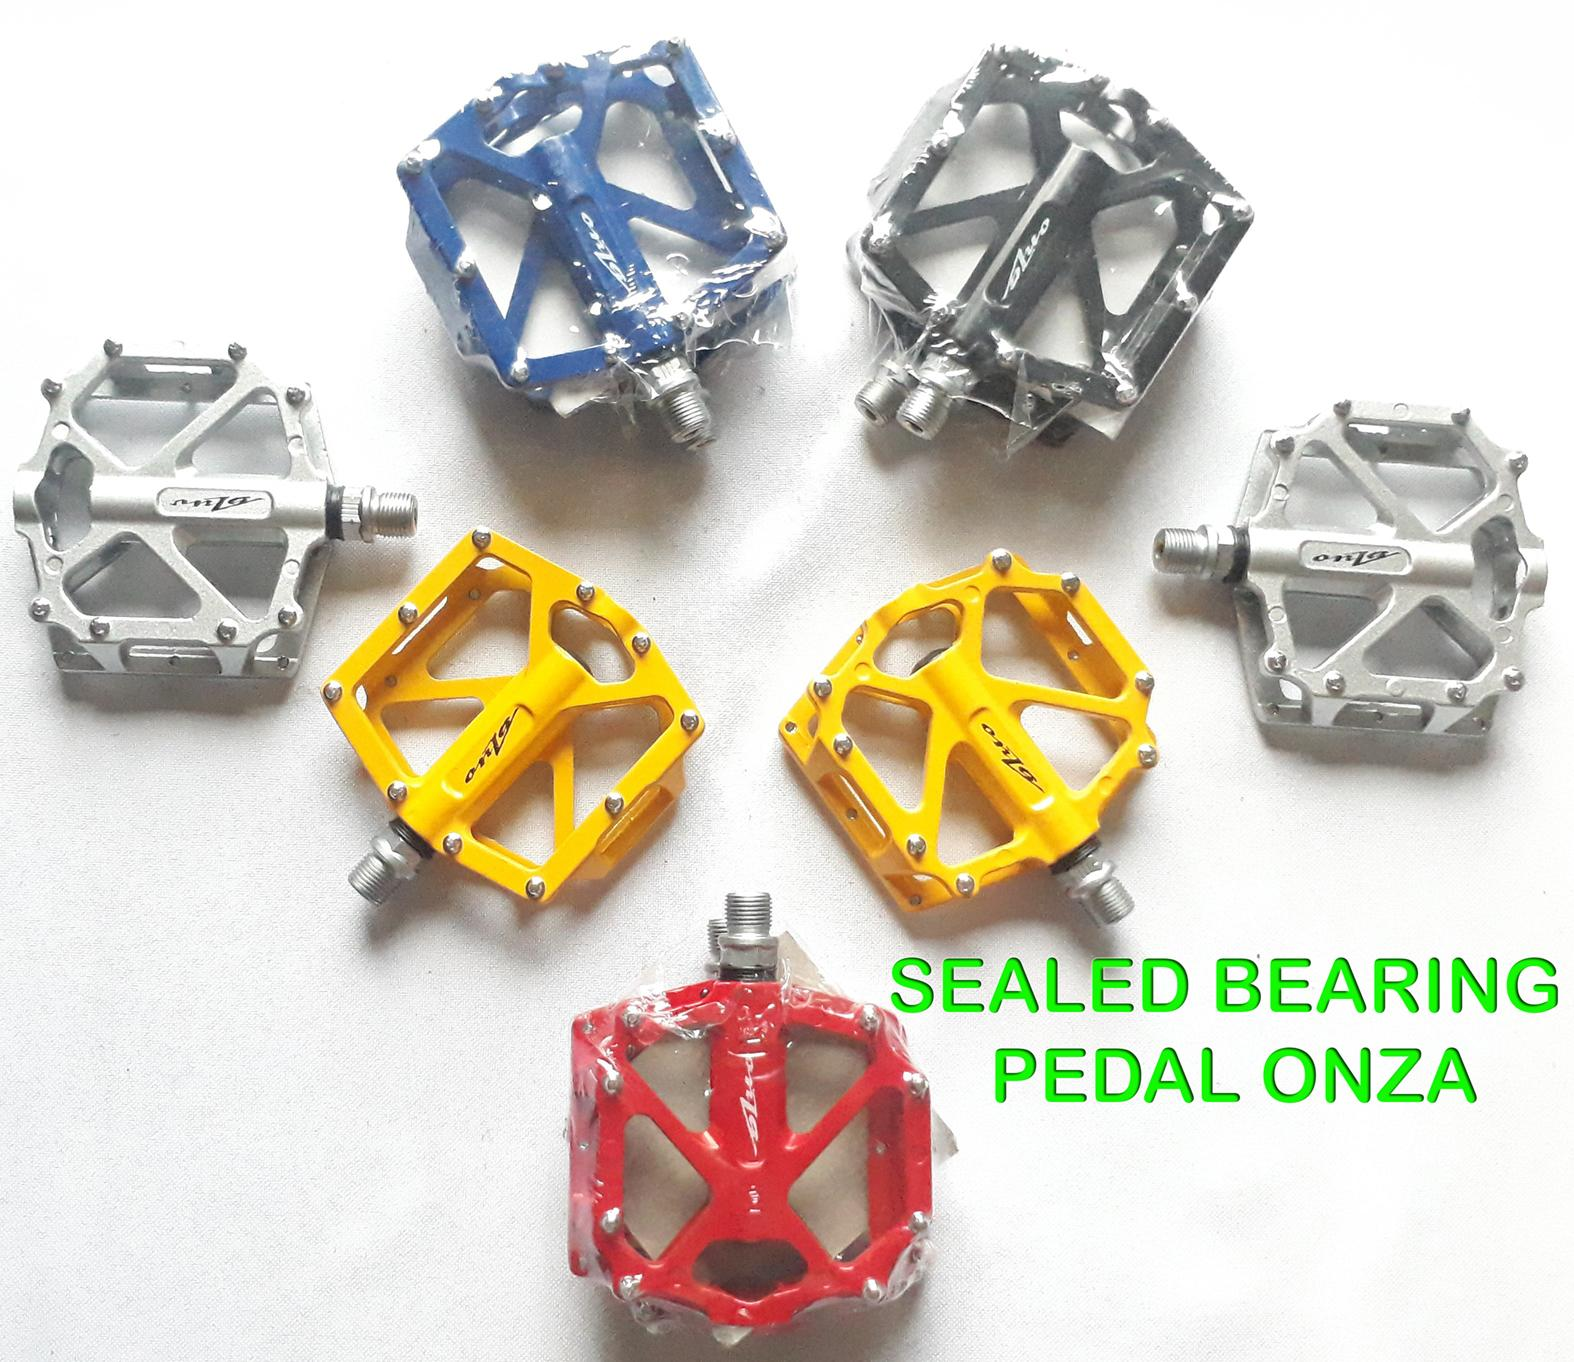 Pedal Mtb 9/16 Onza Sealed Bearing By Philbike.